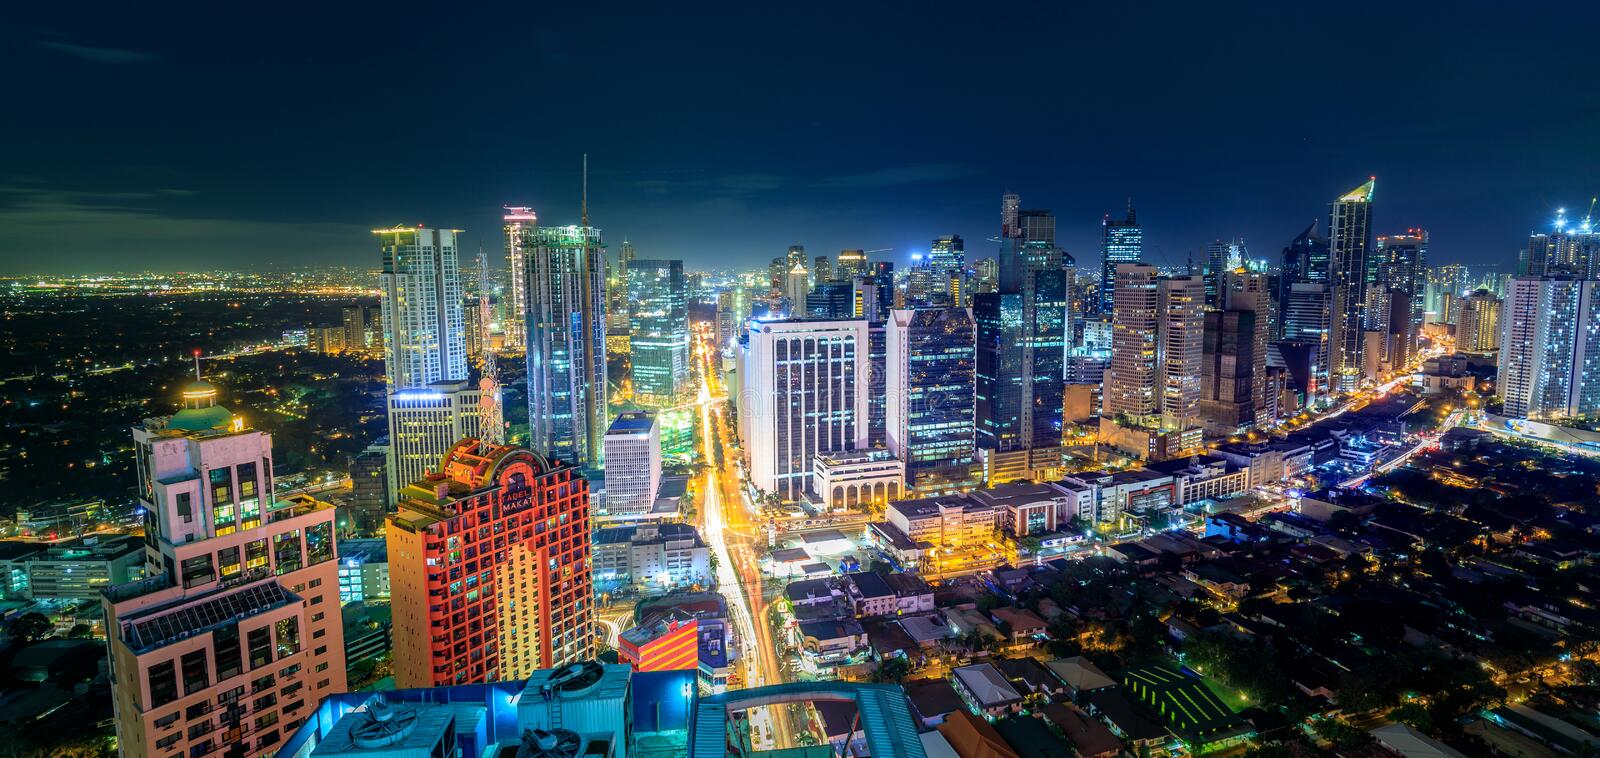 Eleveted, night view of Makati, the business district of Metro M stock photos